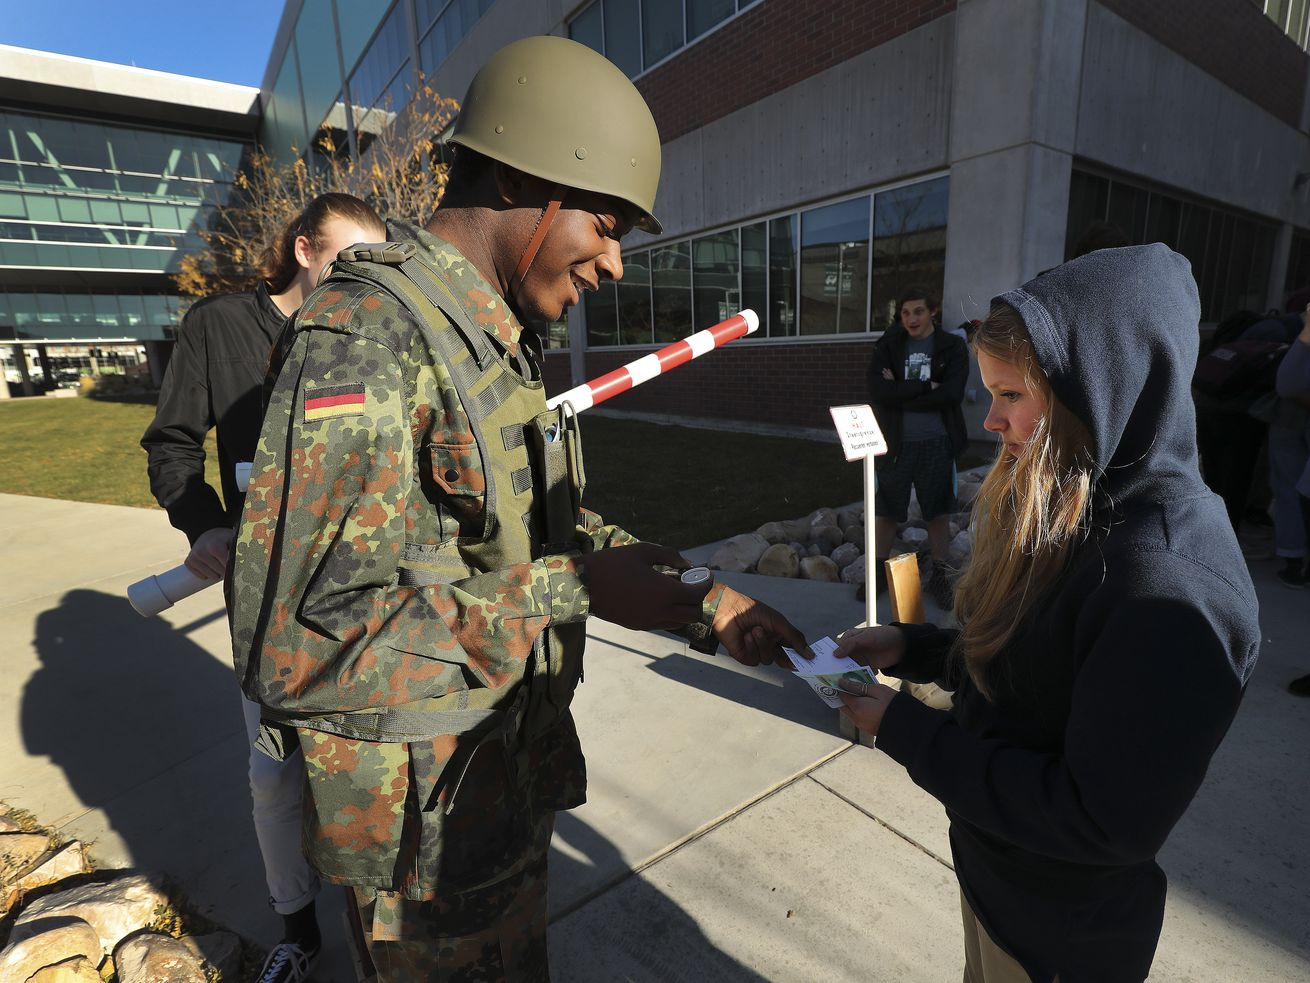 Tariq Petrus checks Anna Petersen's credentials at a a checkpoint as high school students from across the state celebrate the 30th anniversary of the fall of the Berlin Wall at Utah Valley University in Orem on Friday, Nov. 8, 2019. Students celebrated by creating graffiti on a giant replica of the wall, dancing to East German disco music and looking over German memorabilia.